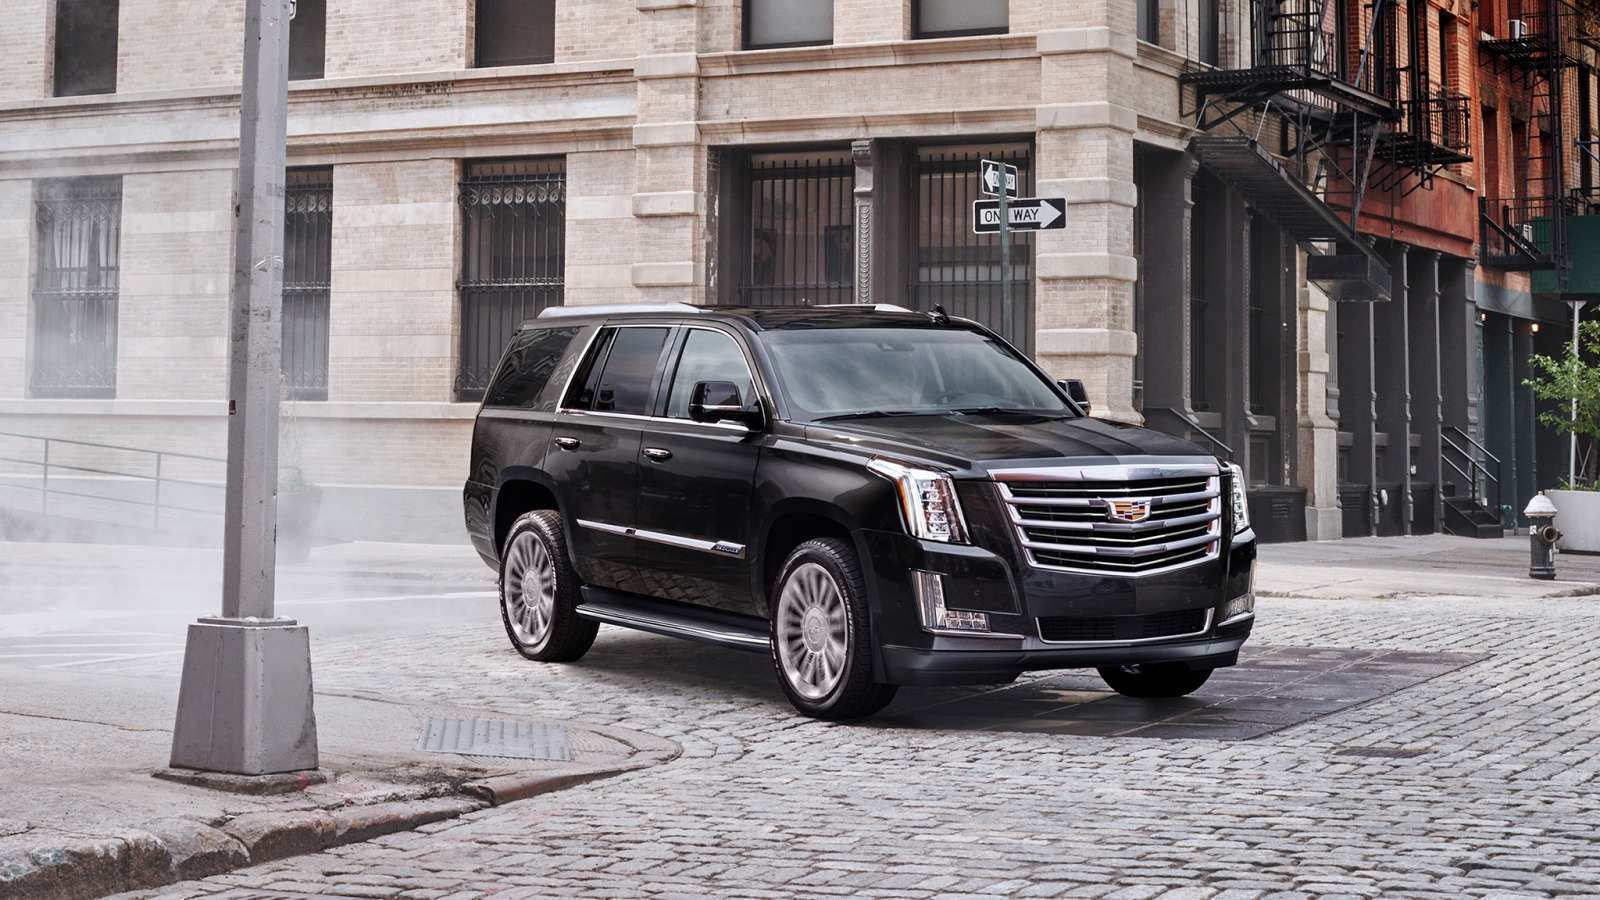 77 Great 2019 Cadillac Escalade Price Performance and New Engine by 2019 Cadillac Escalade Price